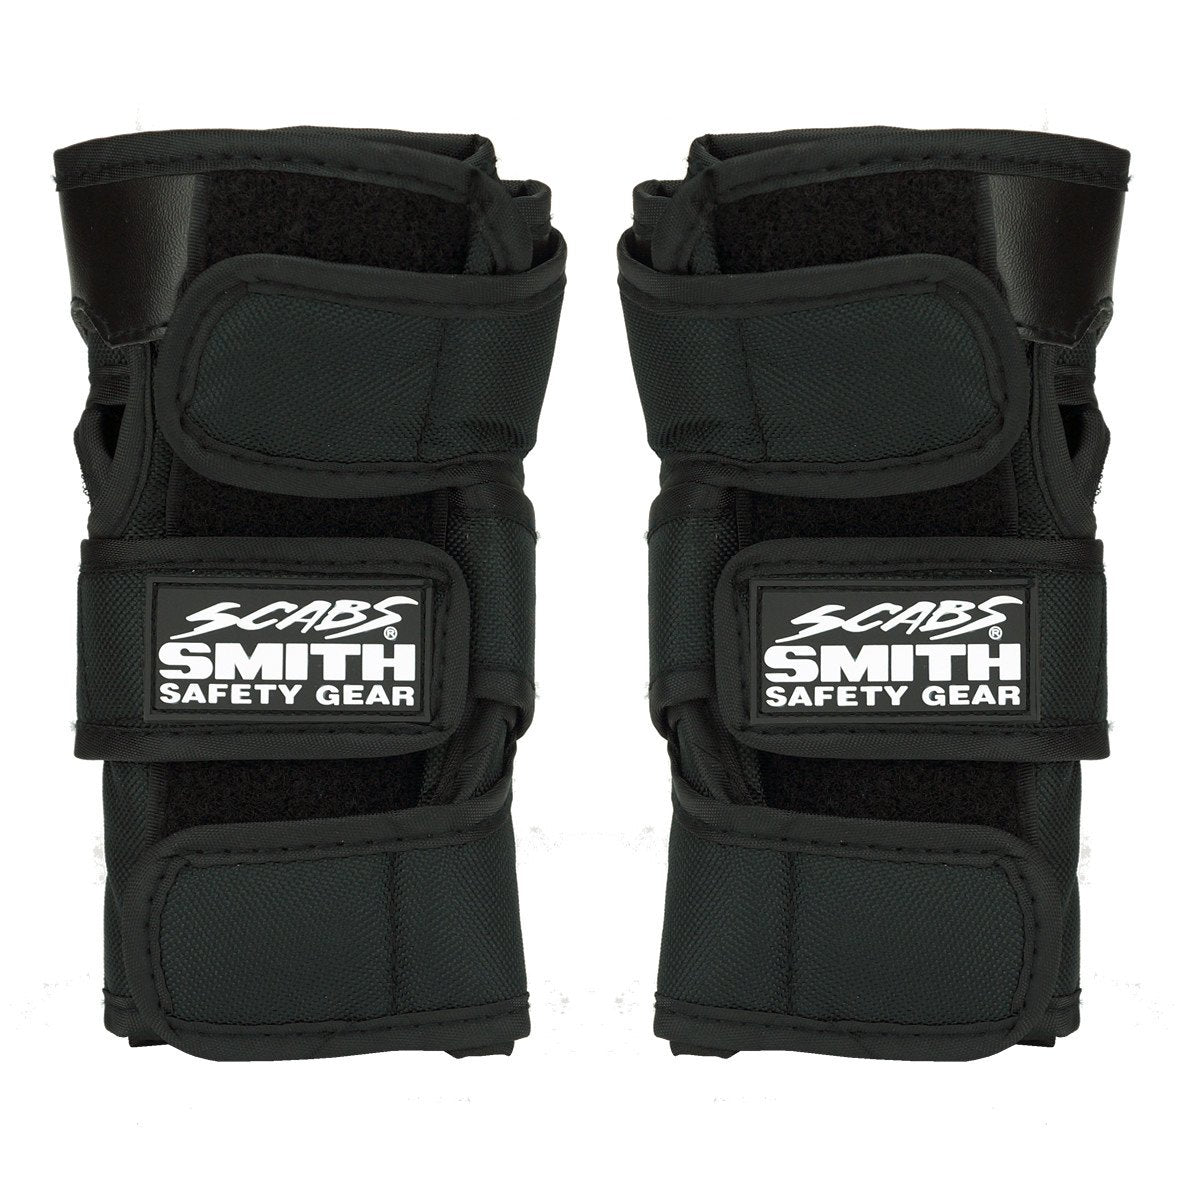 Smith Scabs Wrist Guards Black XLARGE